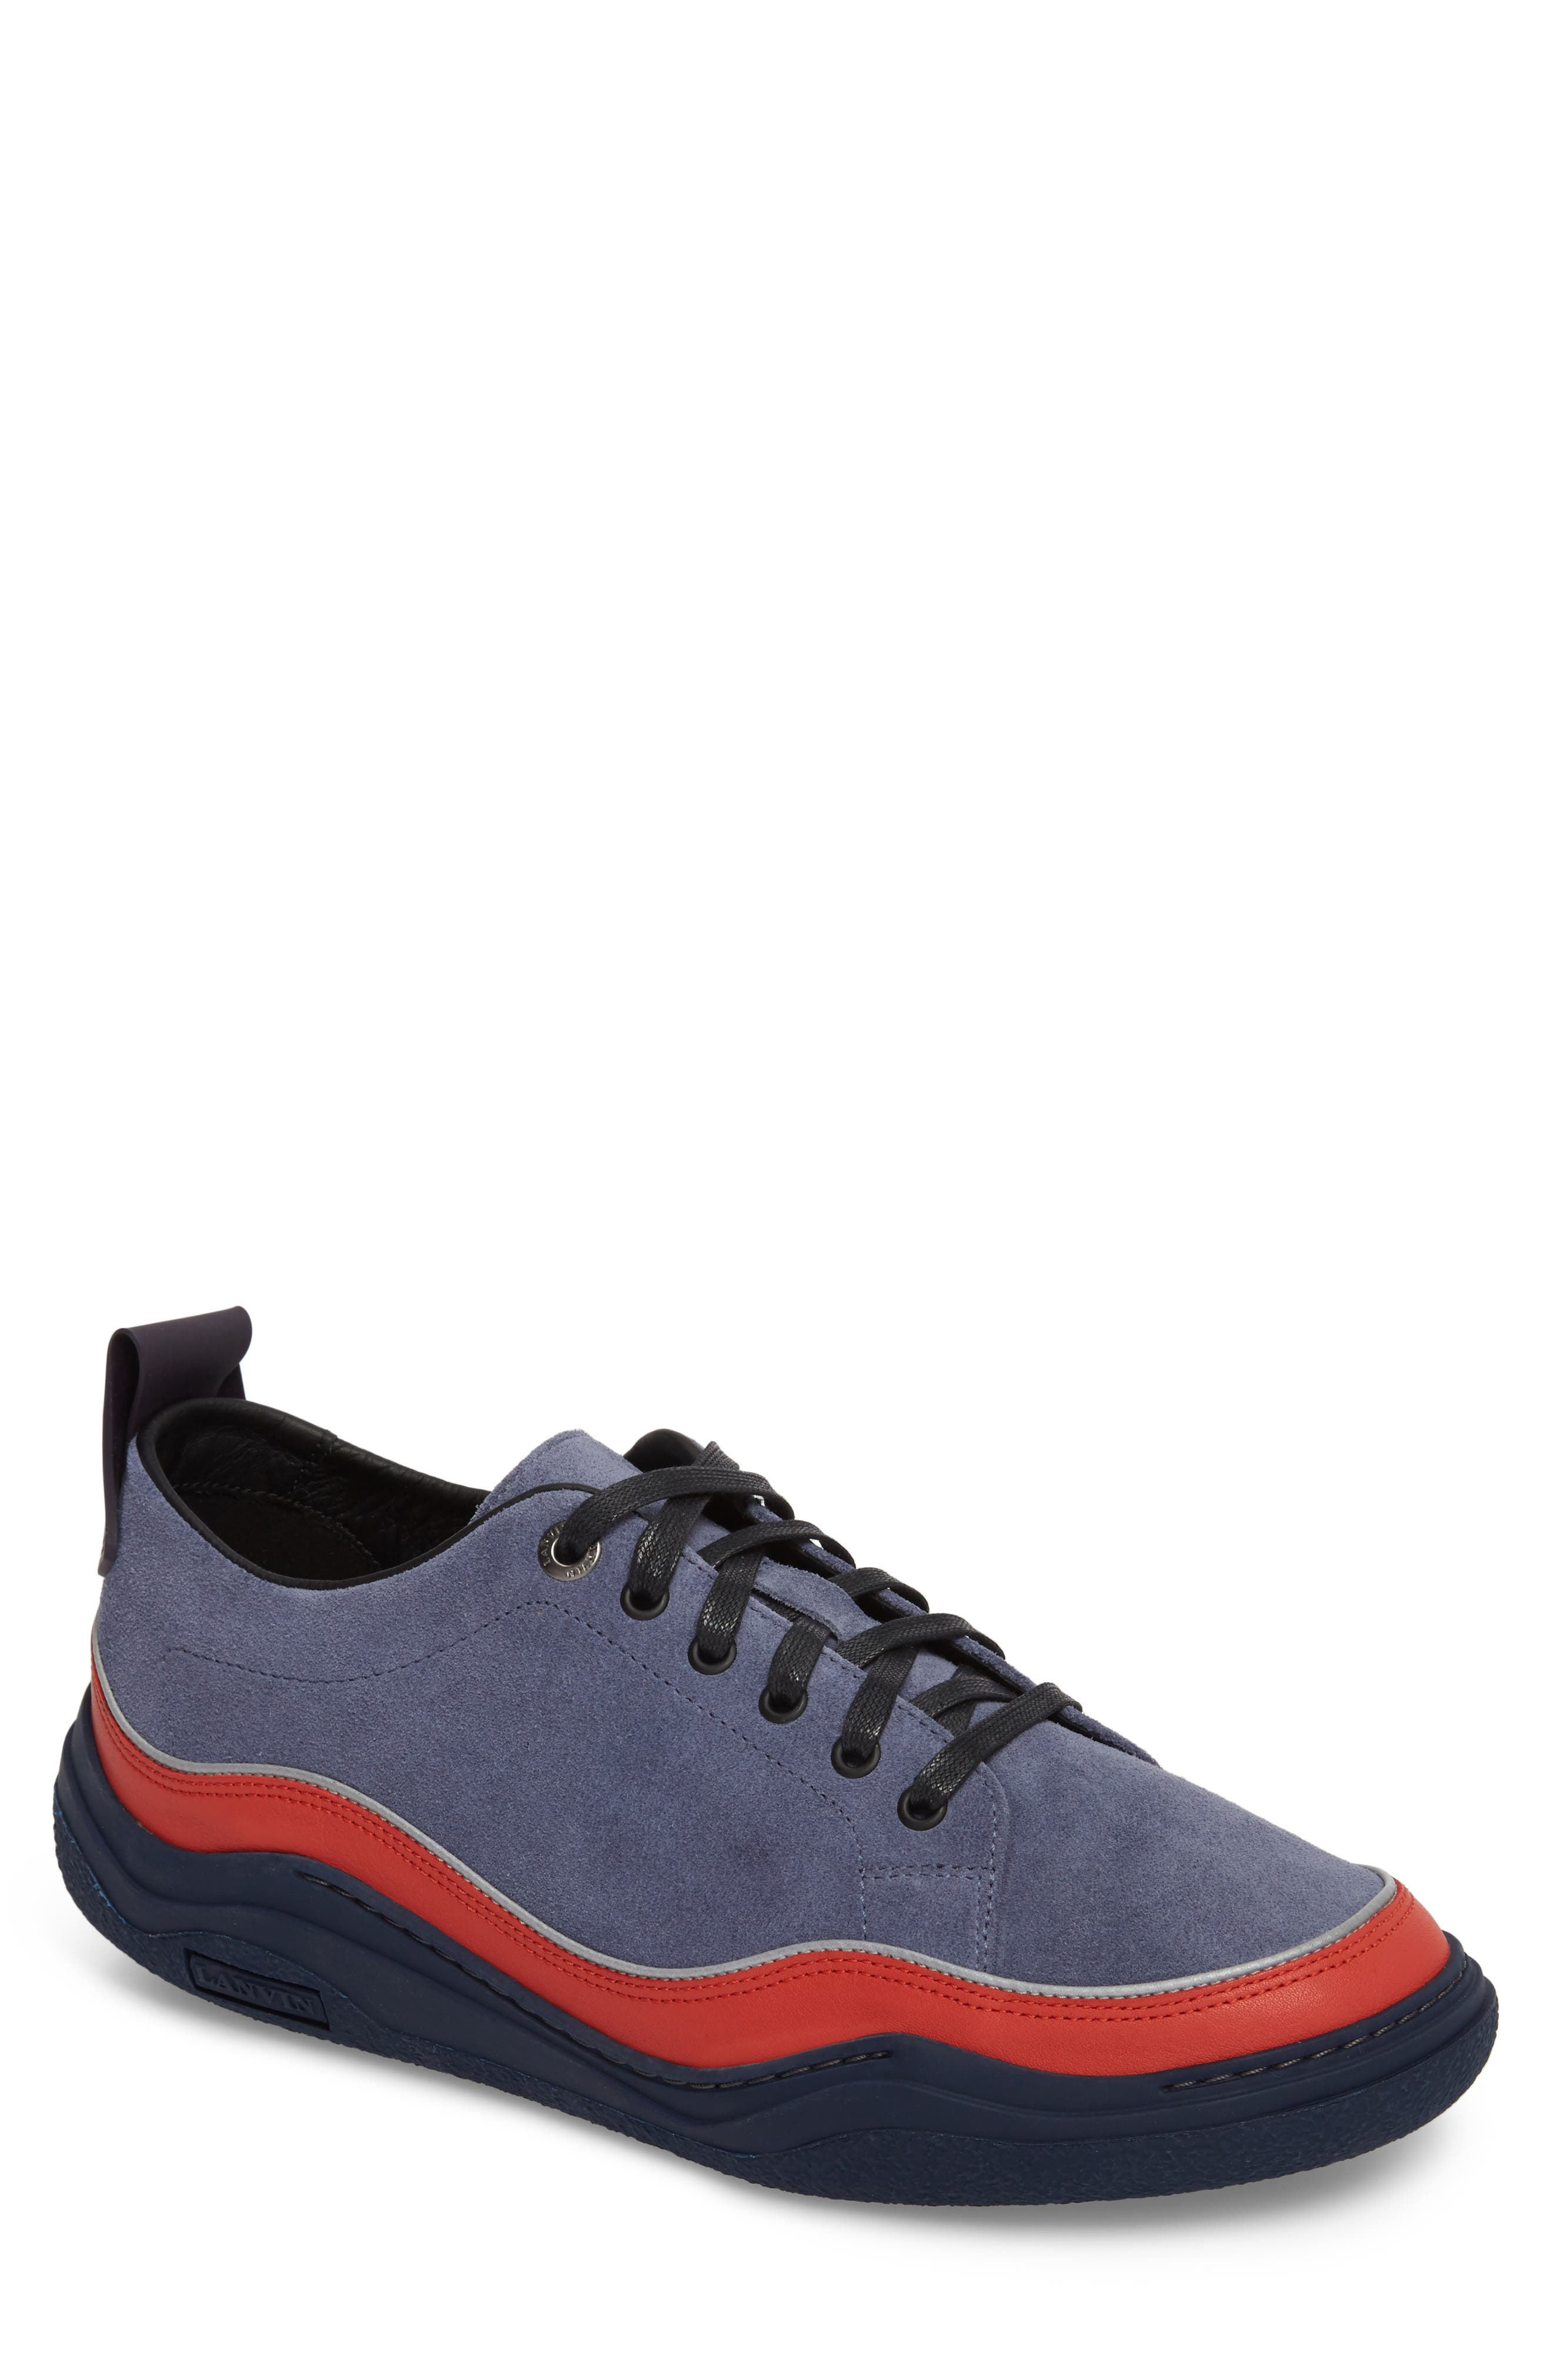 LANVIN Diving Sneaker, Main, color, 450